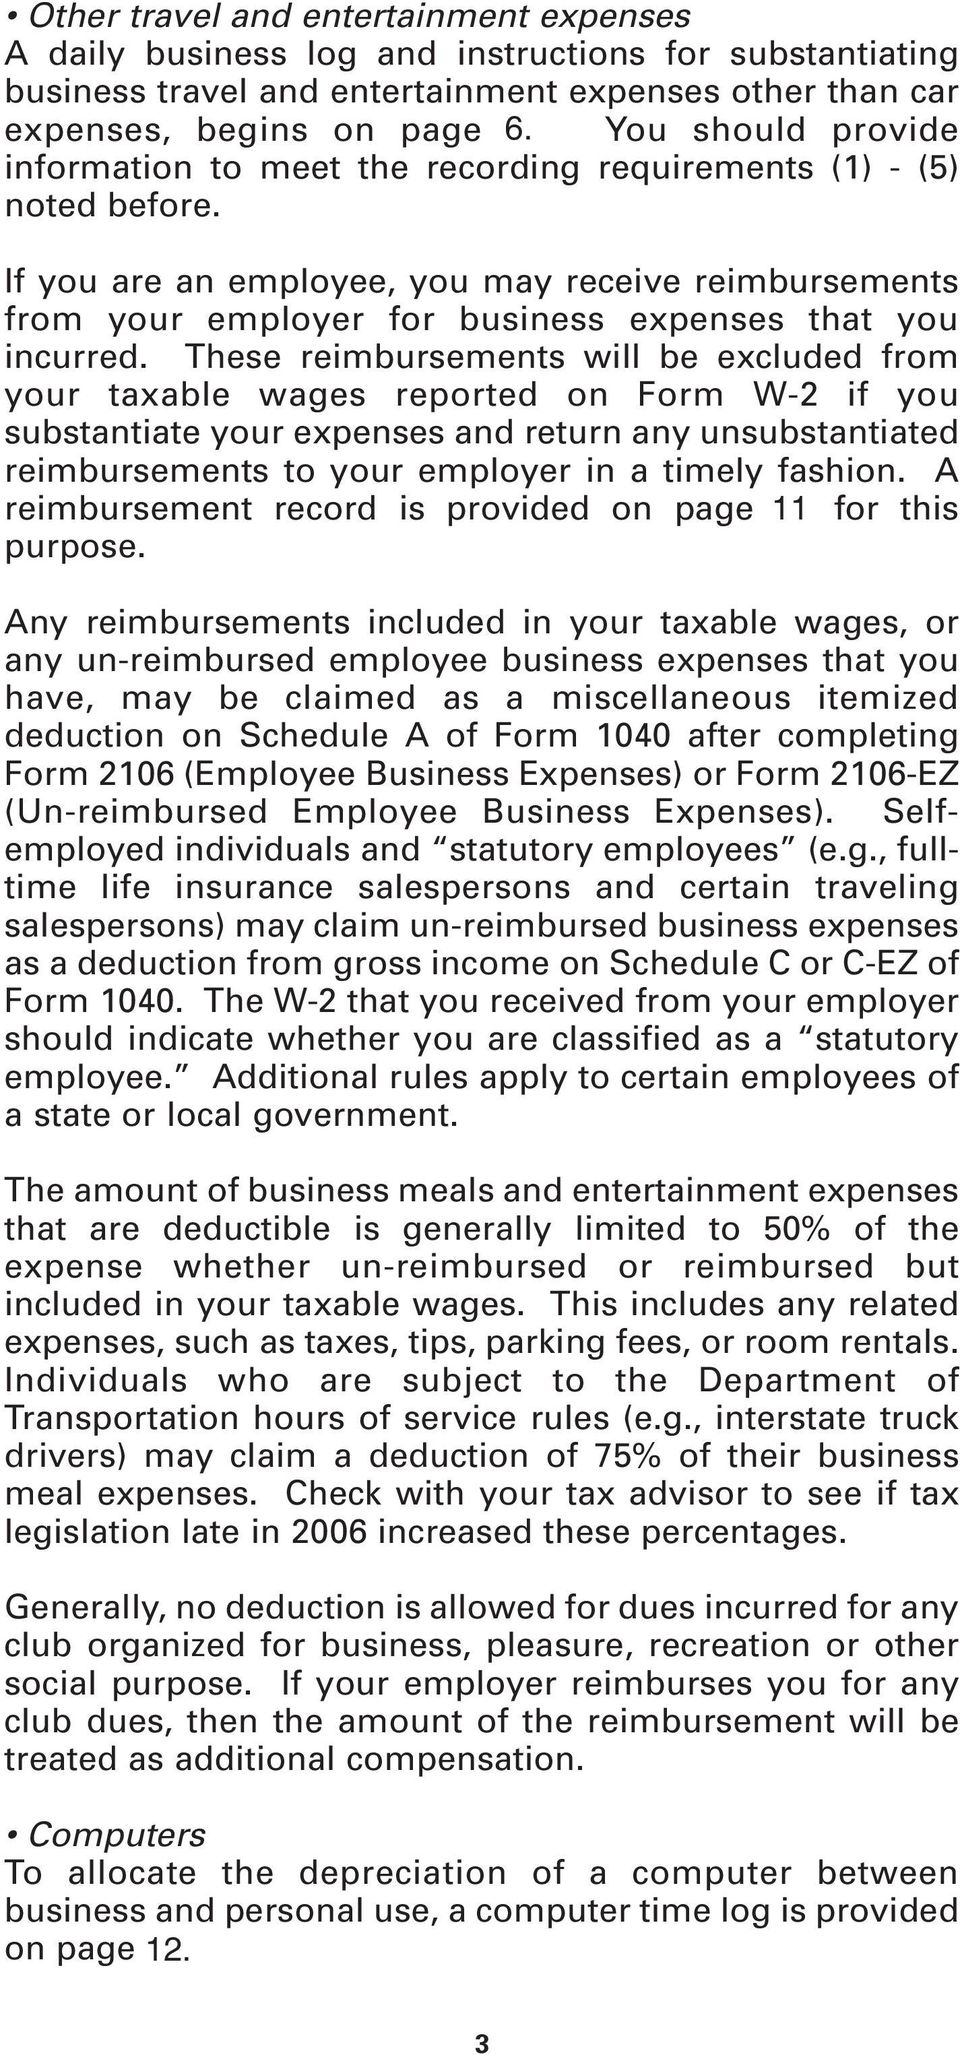 If you are an employee, you may receive reimbursements from your employer for business expenses that you incurred.